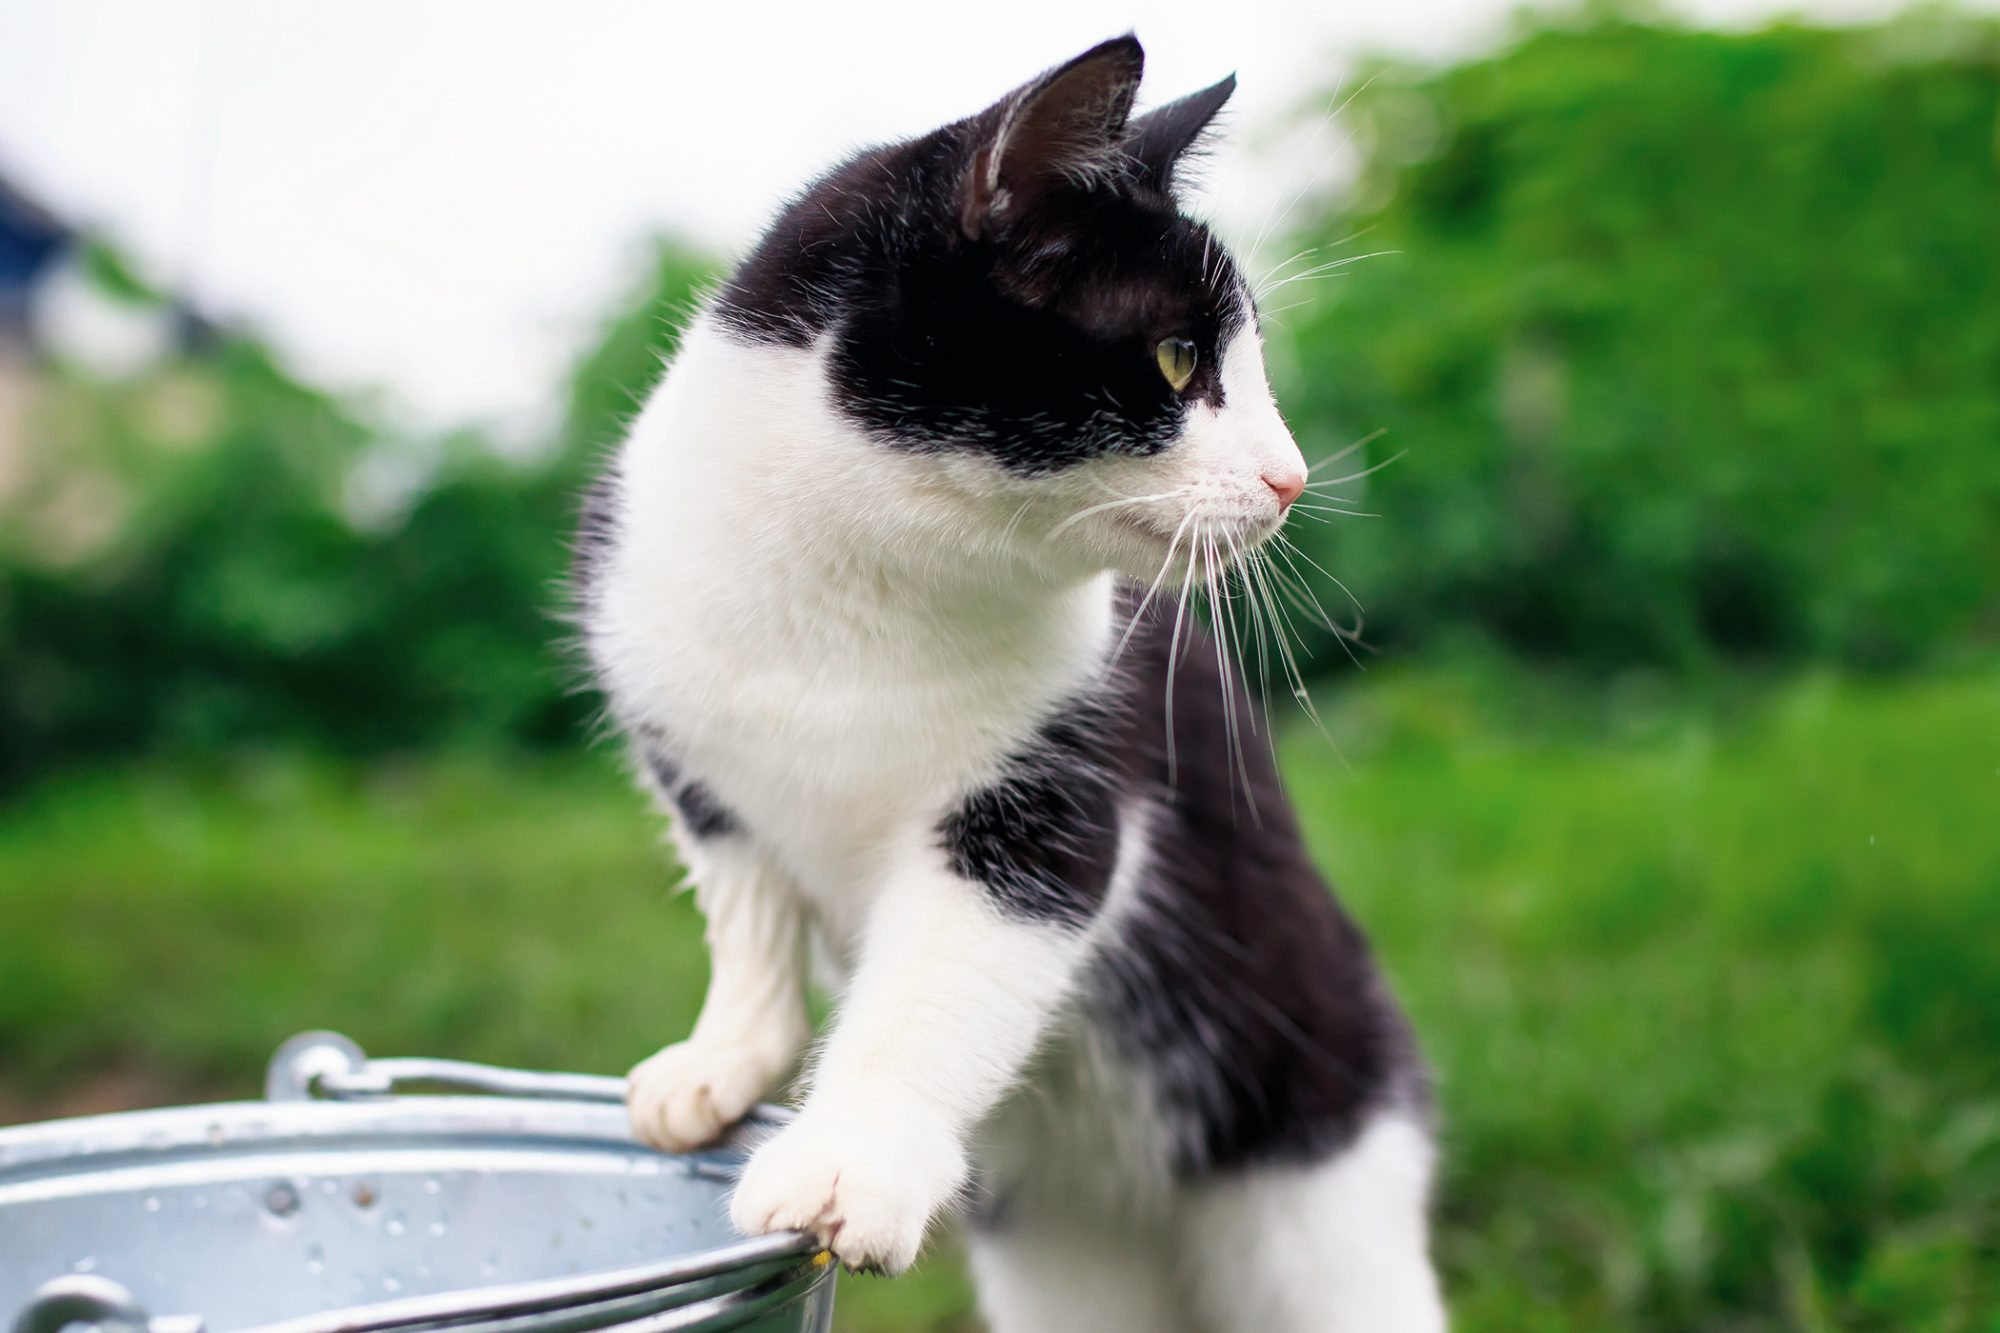 black-and-white cat standing near bucket